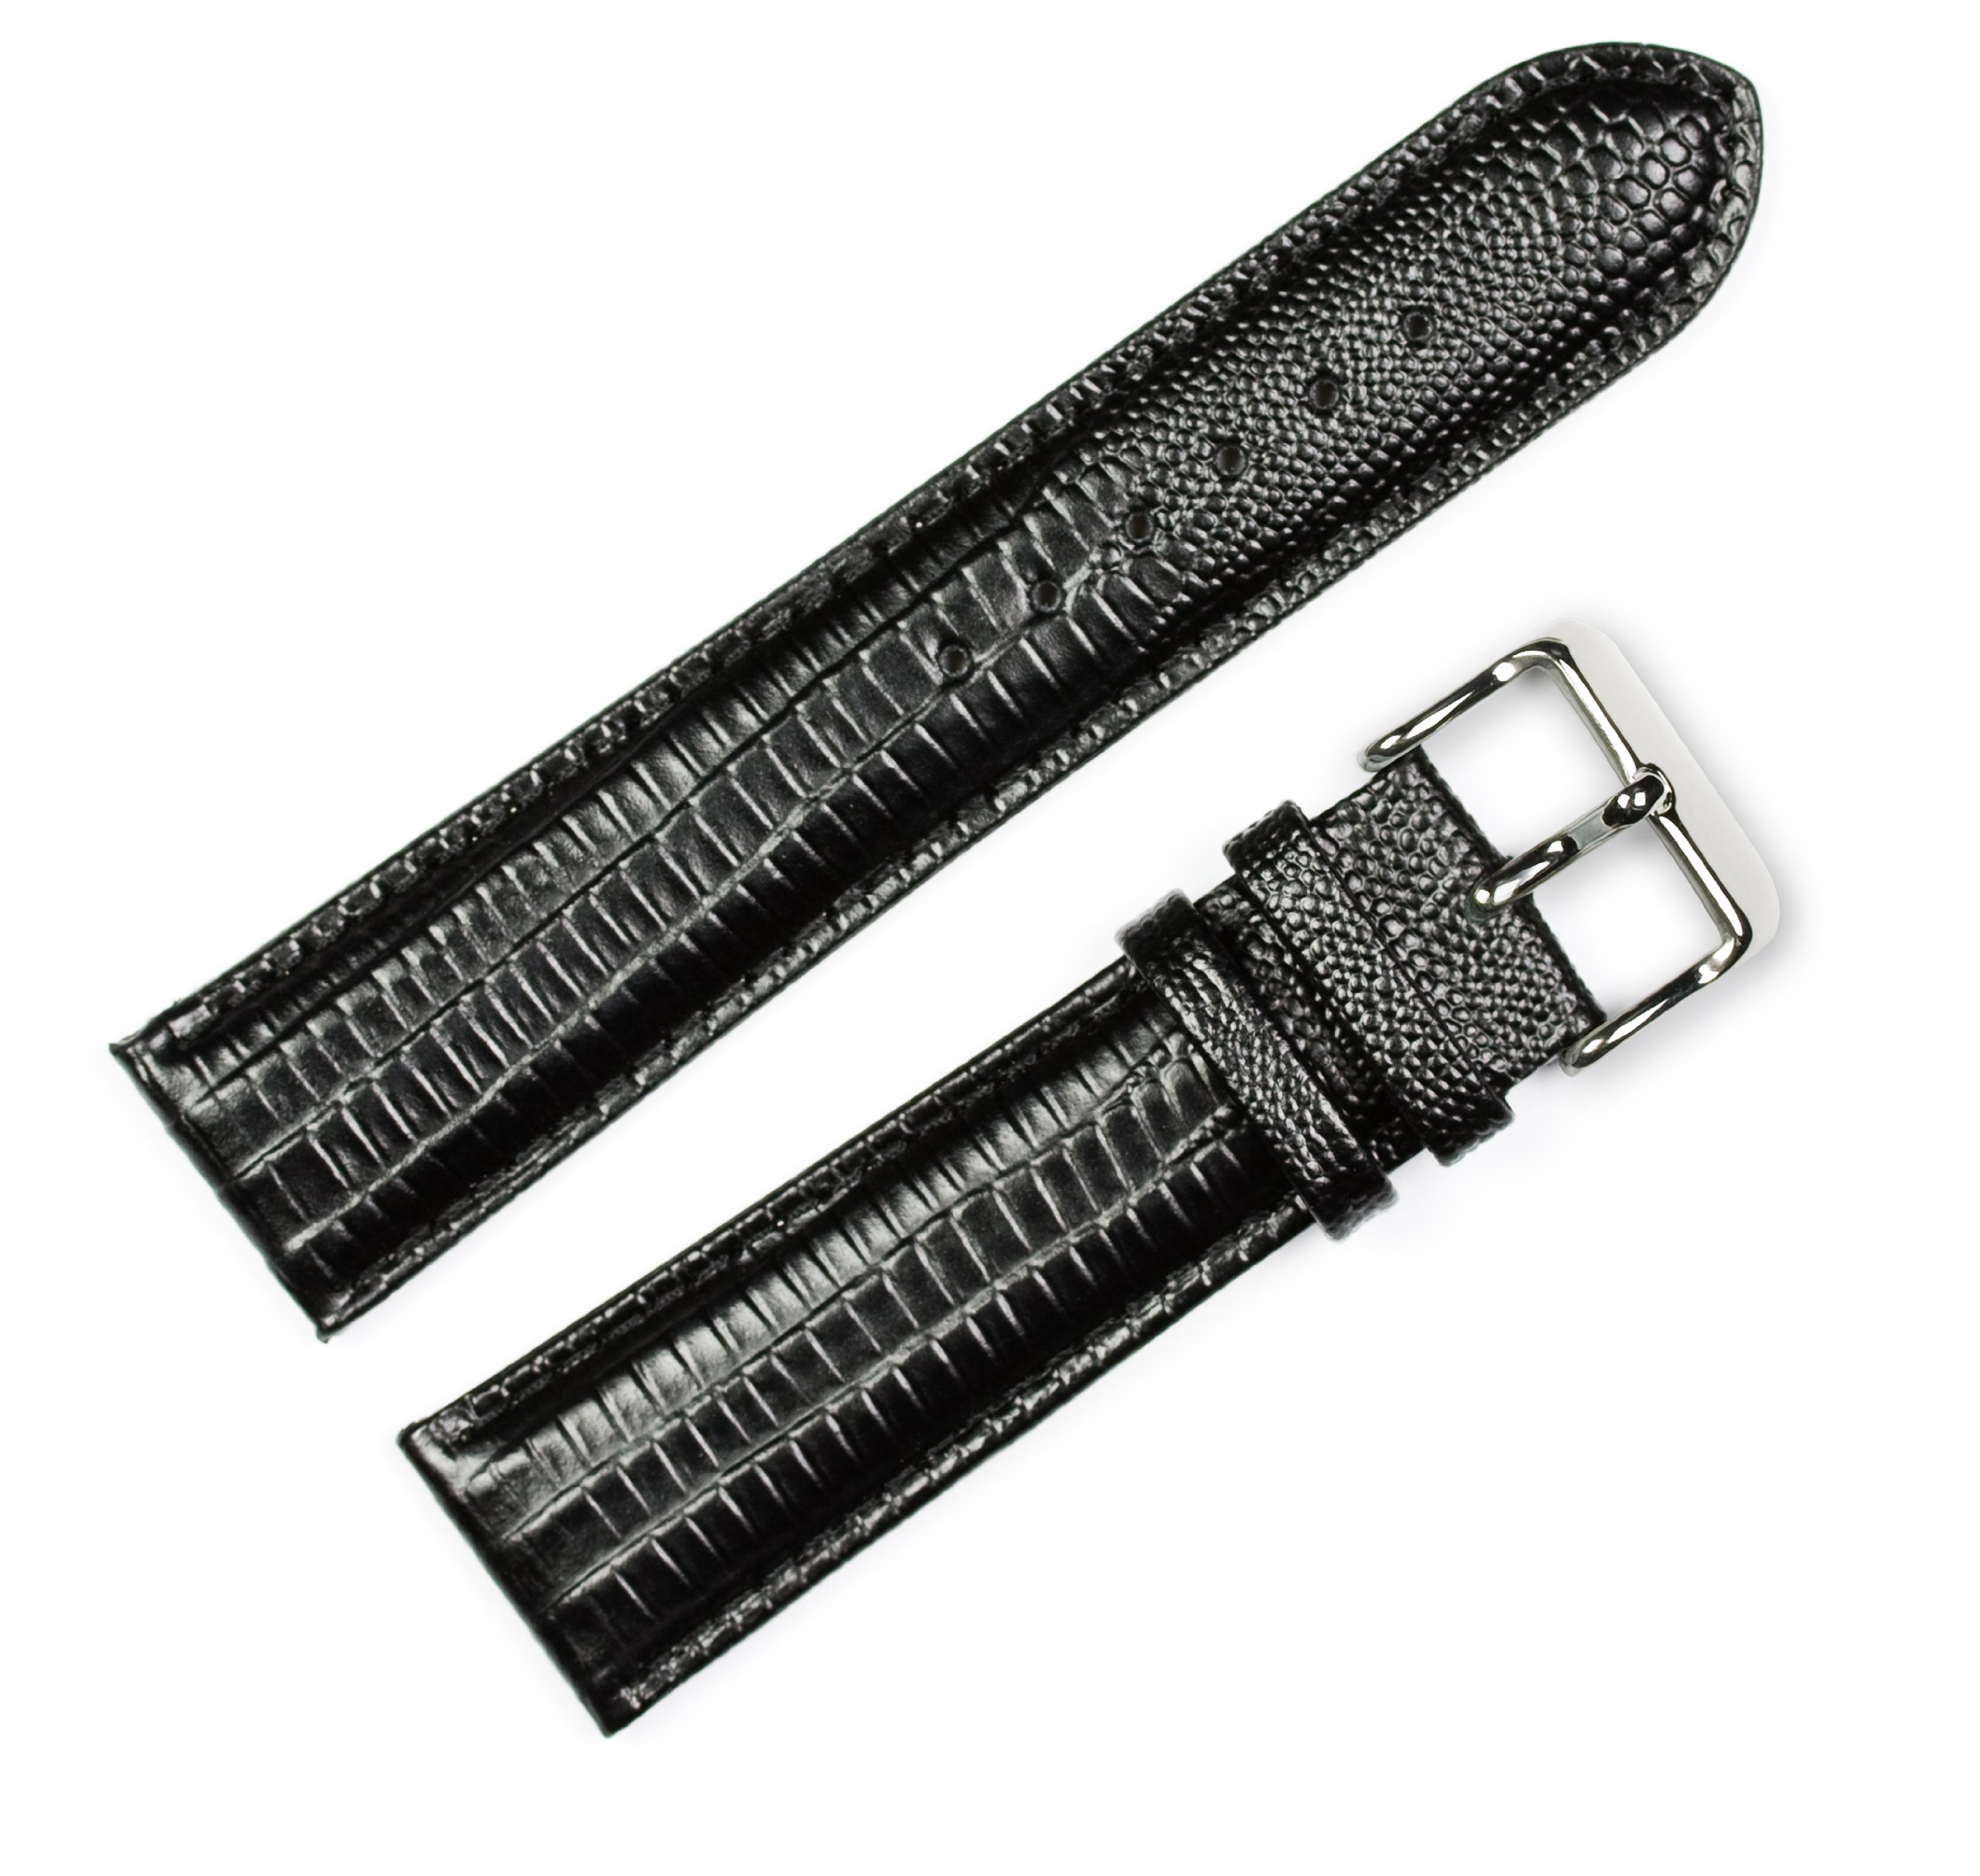 Teju Lizard Grain Watchband Black 19mm Watch band - by deBeer